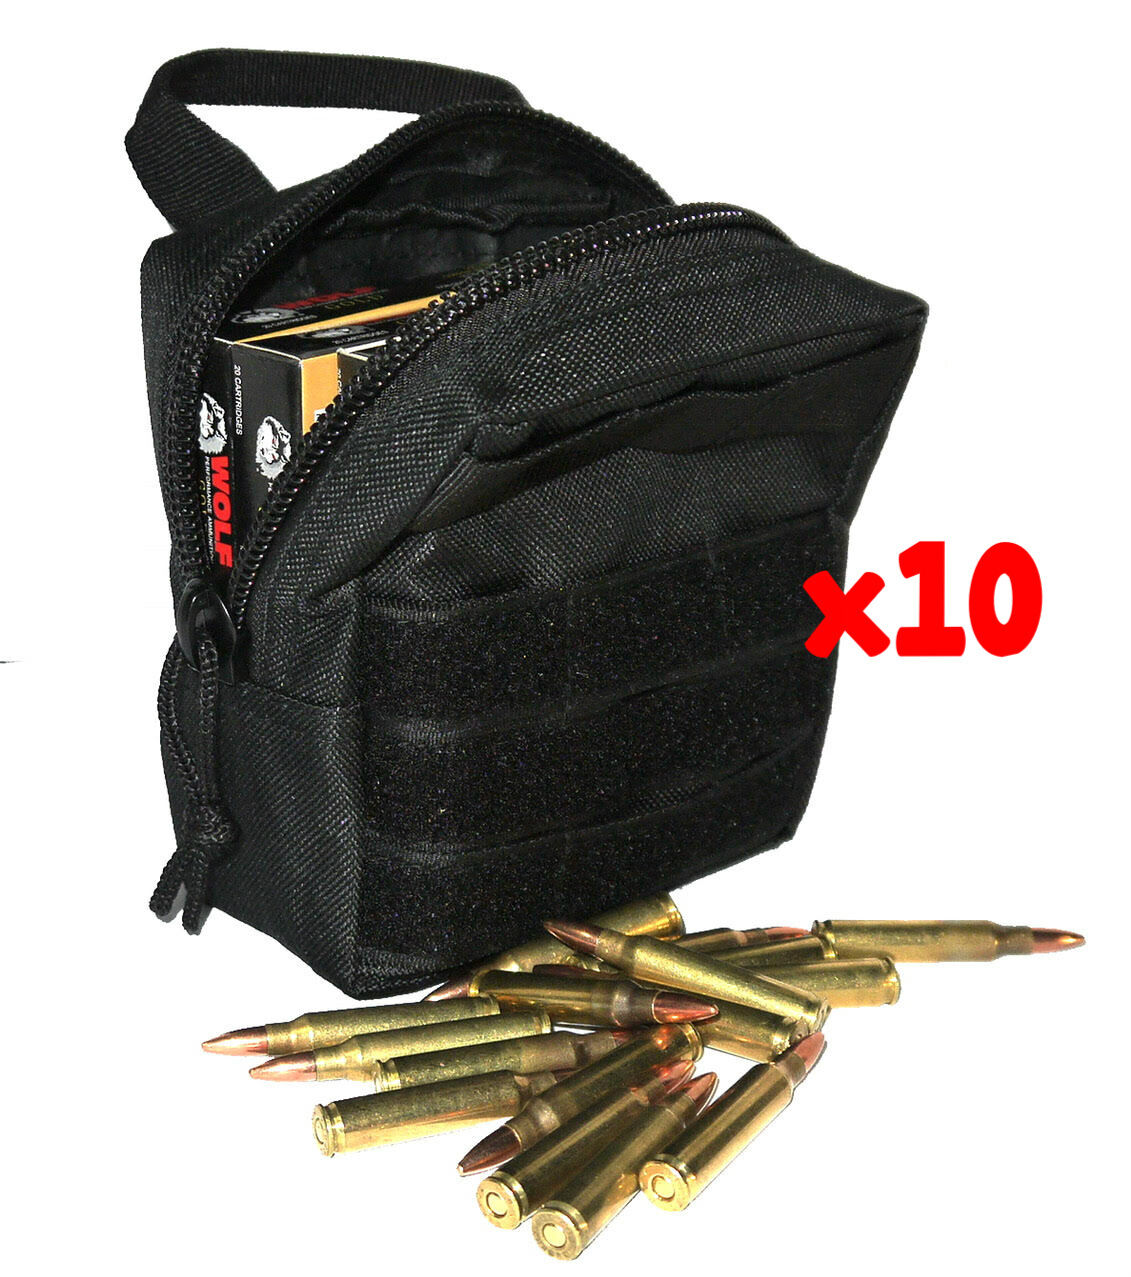 (10) SHOTGUN SHELL AMMO MODULAR MOLLE UTILITY POUCHES FRONT HOOK LOOP STRAP